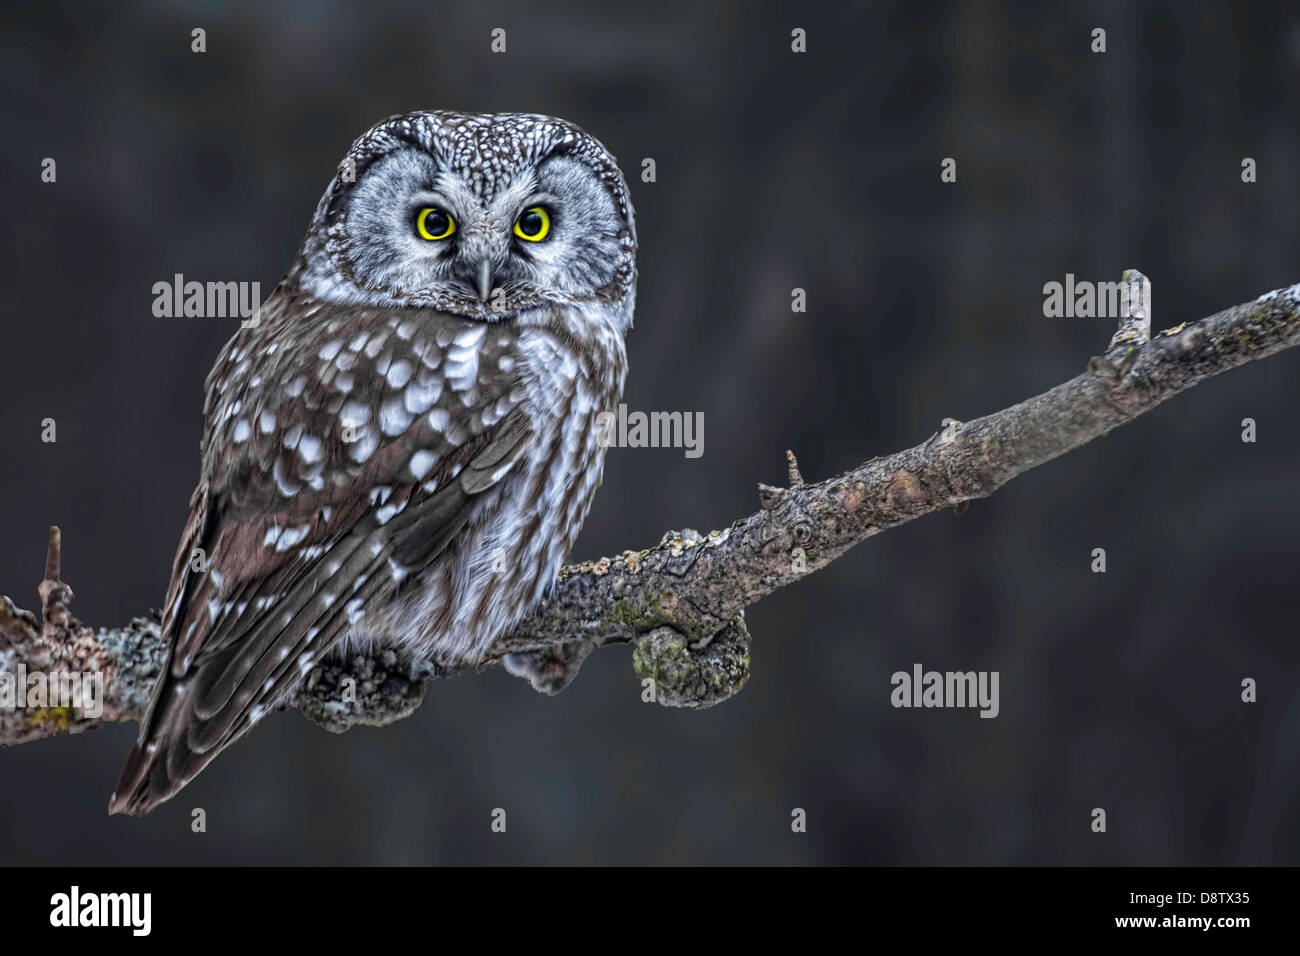 Royal Owl Stock Photos & Royal Owl Stock Images - Alamy on saw-whet owl house, great horned owl house, barred owl house, eastern screech owl house, western screech owl house,